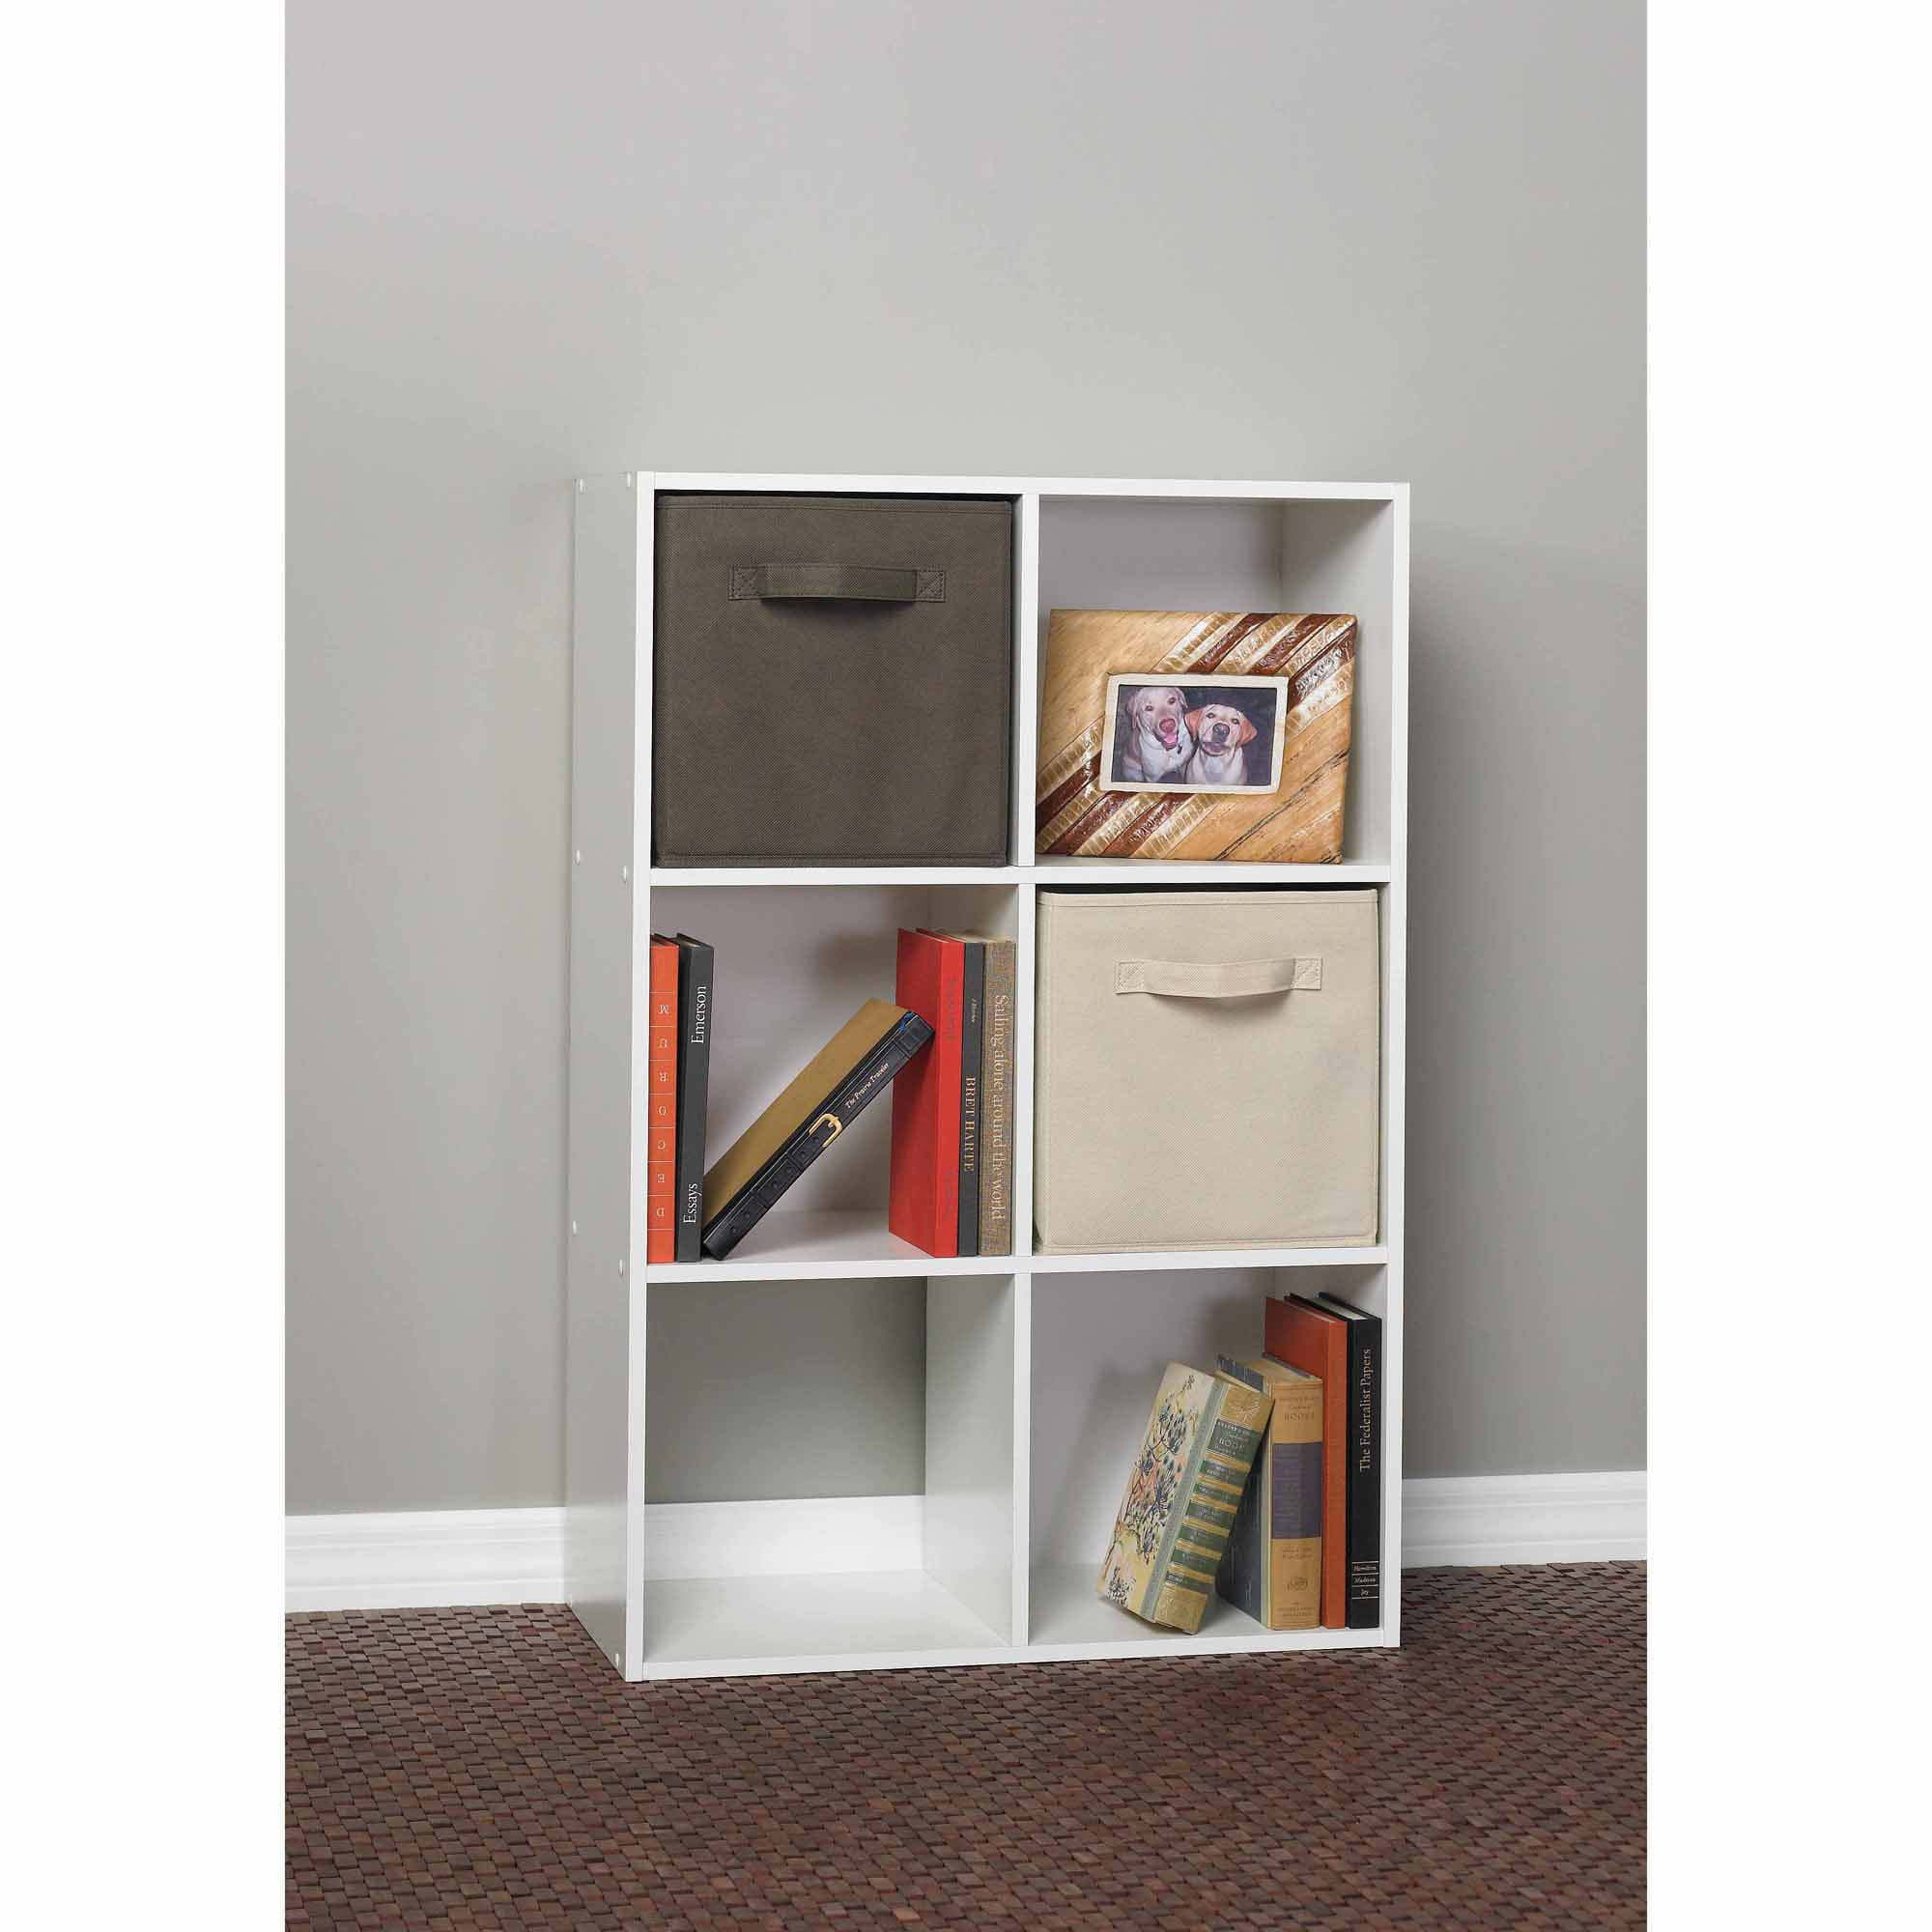 ClosetMaid 6 Cube Organizer, White   Walmart.com